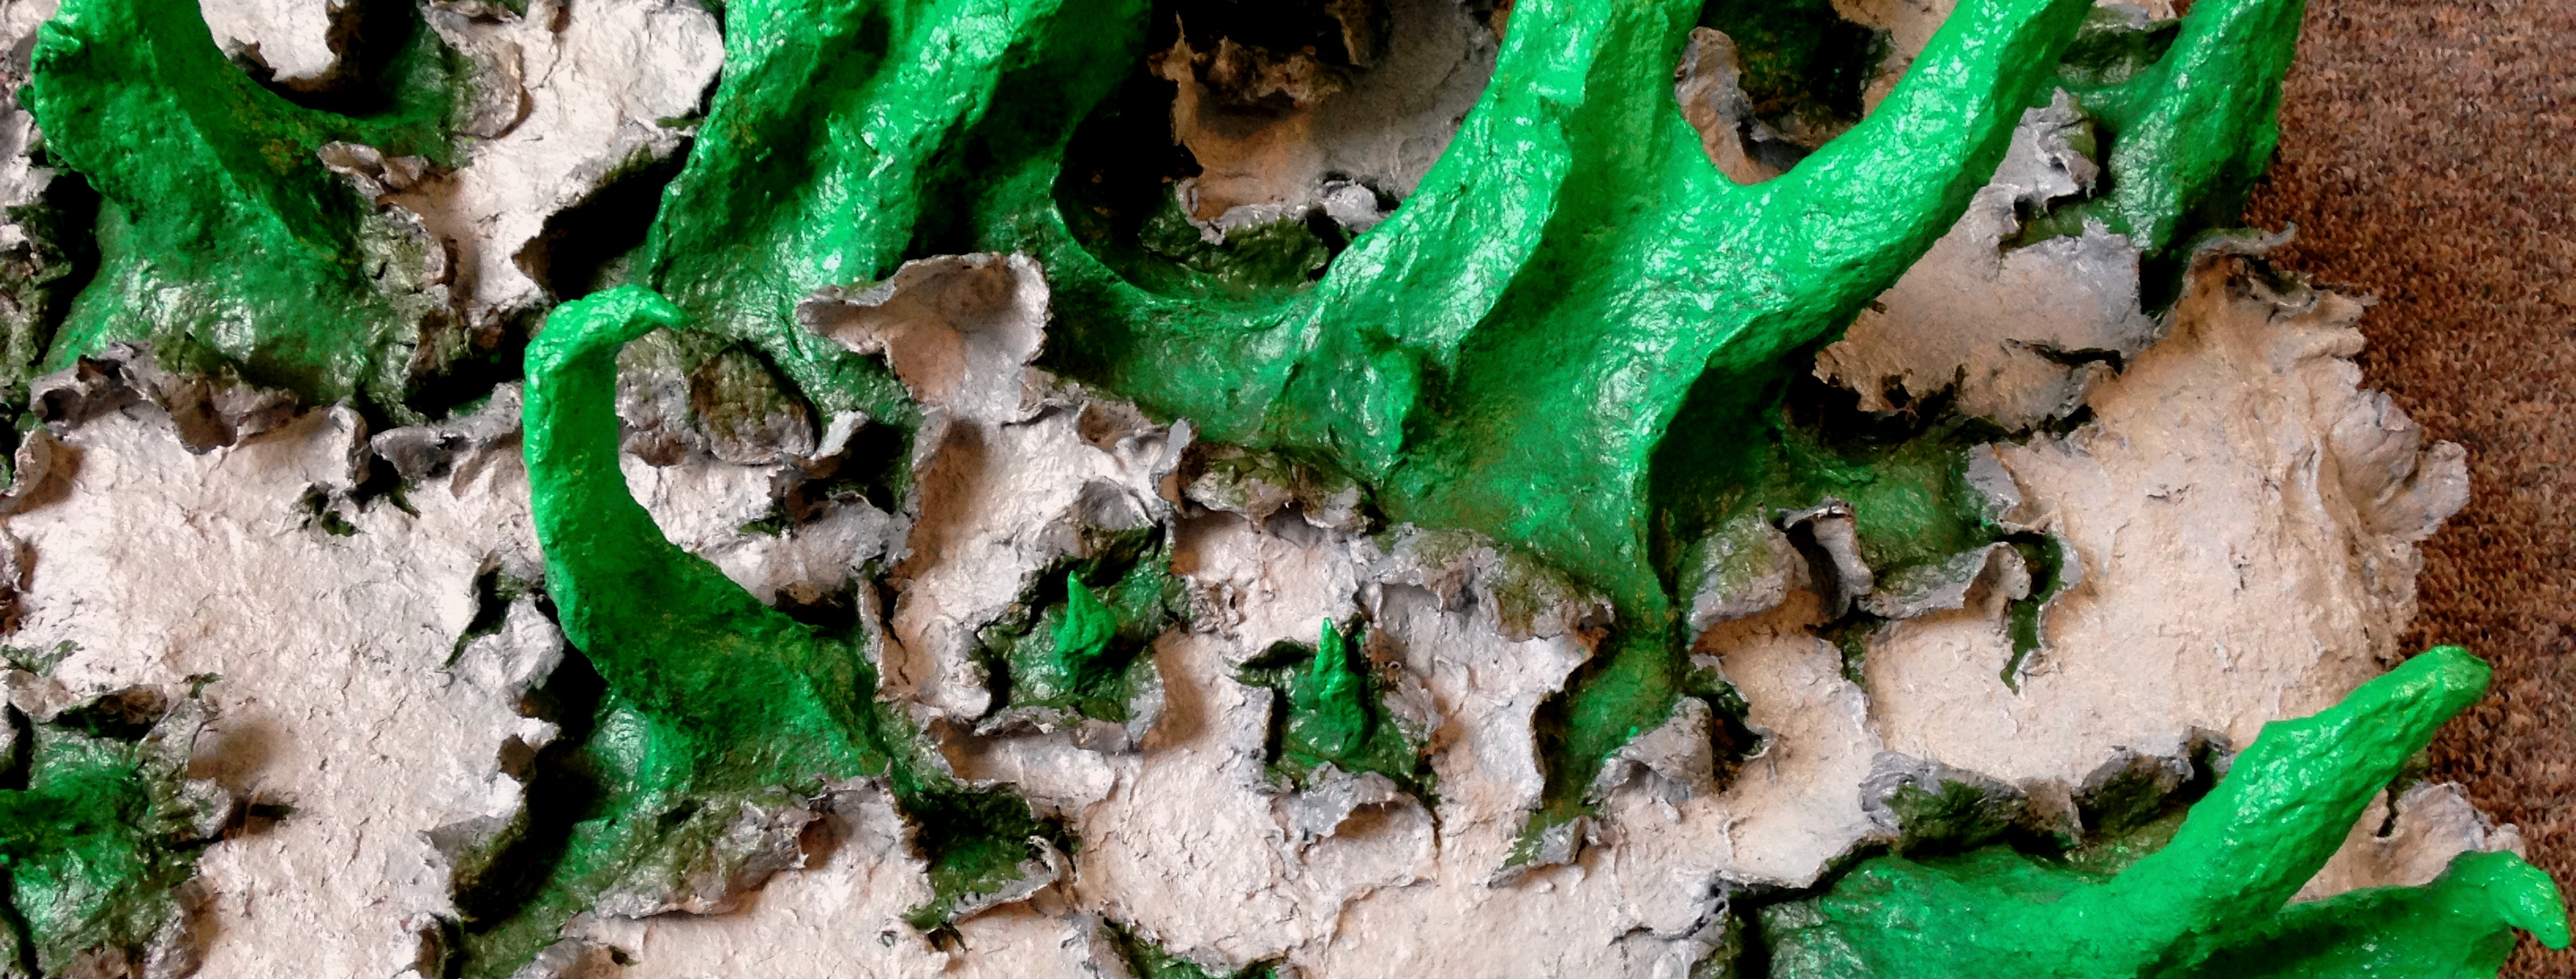 Detail of a sculpture in progress by MJ Seal made from paper mache that resembles spiky, spring green tentacles breaking out of a gray, papery skin